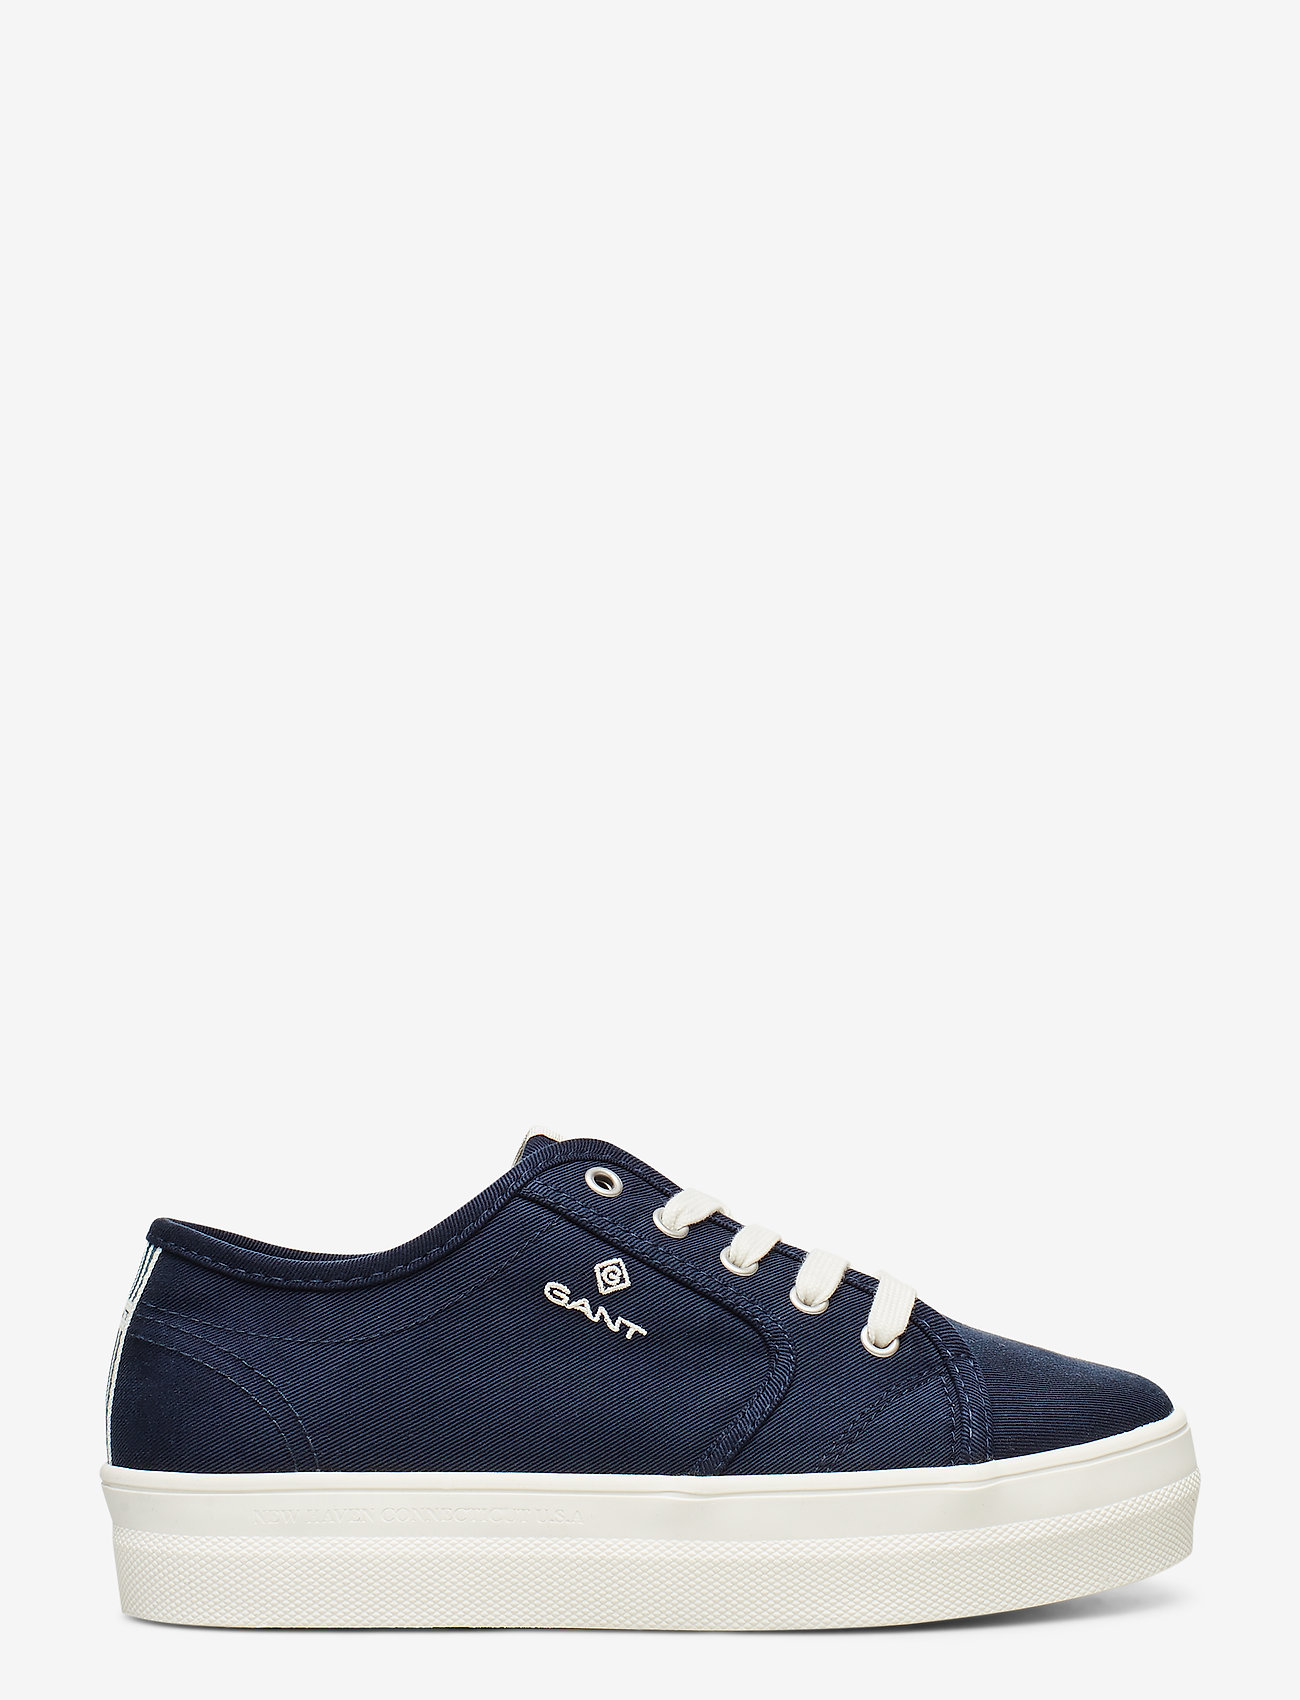 GANT - Leisha Low lace shoes - low top sneakers - marine - 1